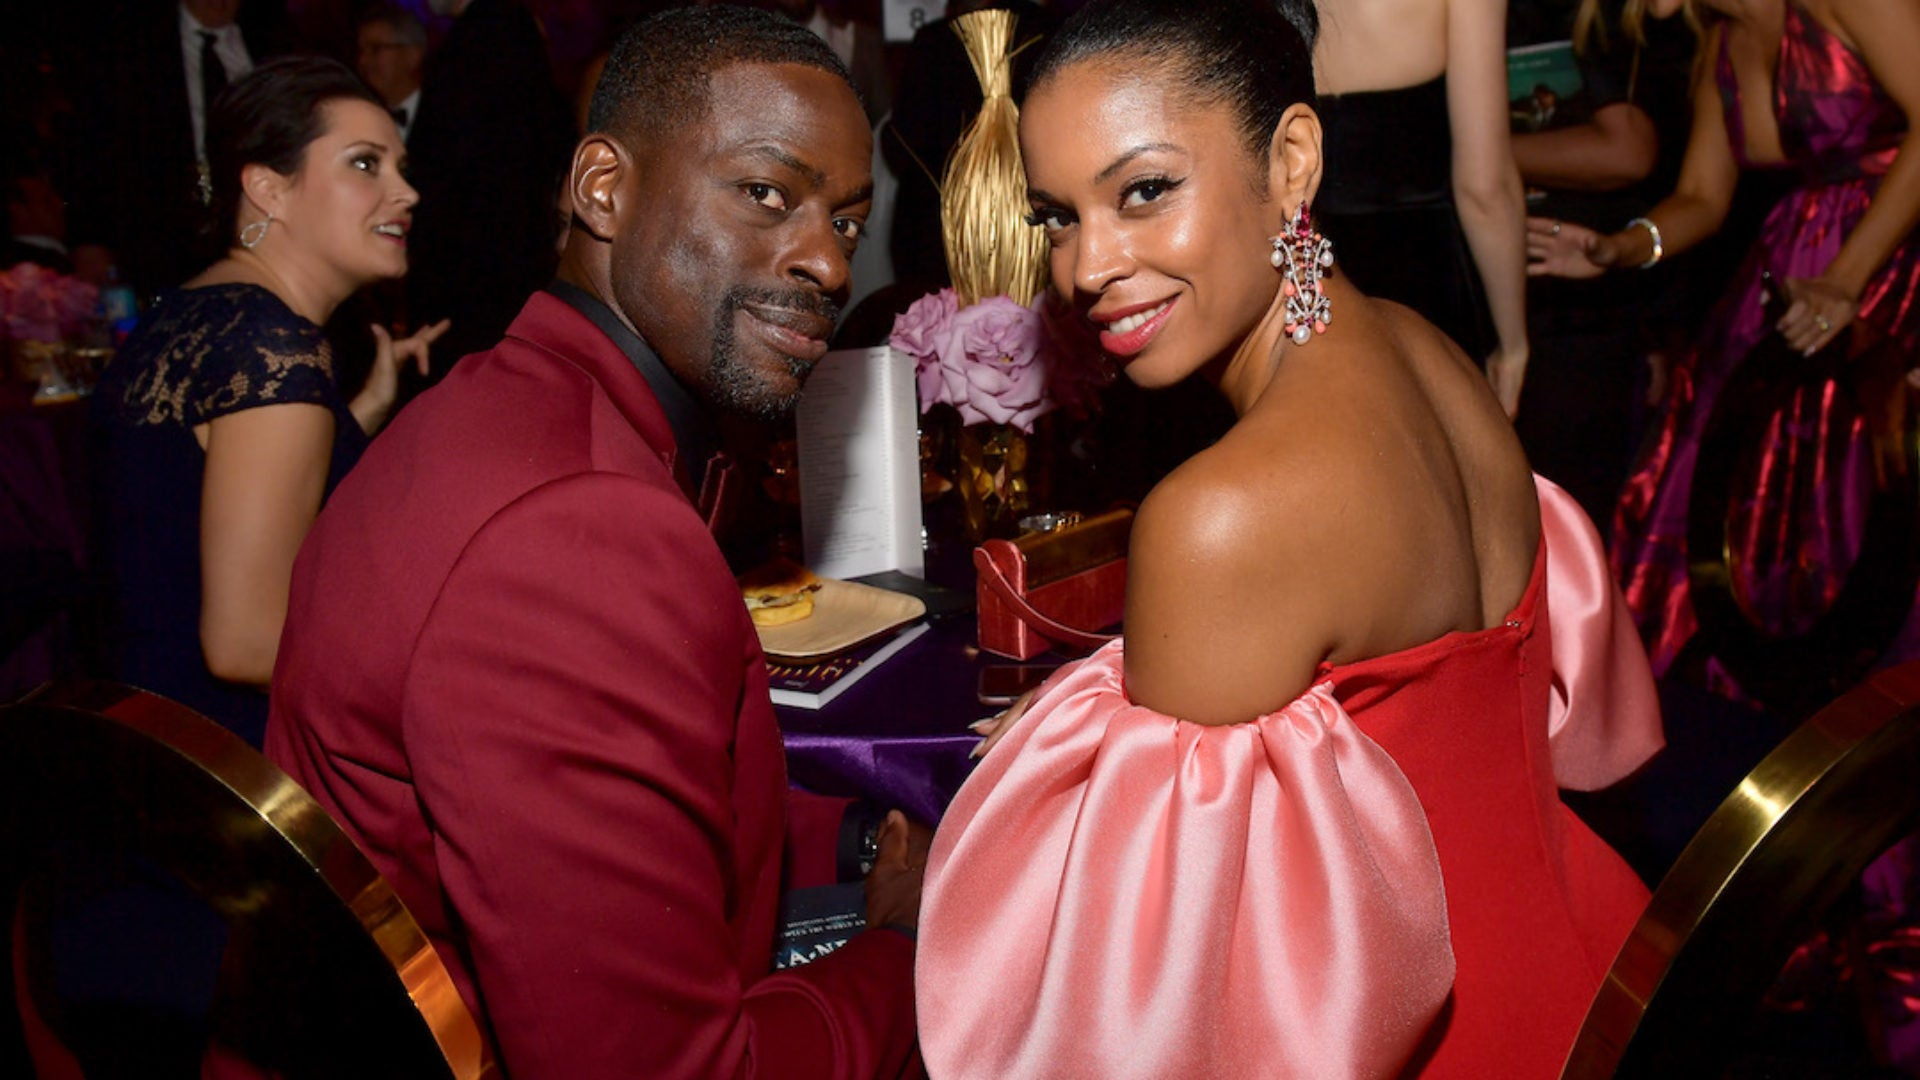 'This Is Us' Stars Sterling K. Brown And Susan Kelechi Watson Keep The Good Times Going